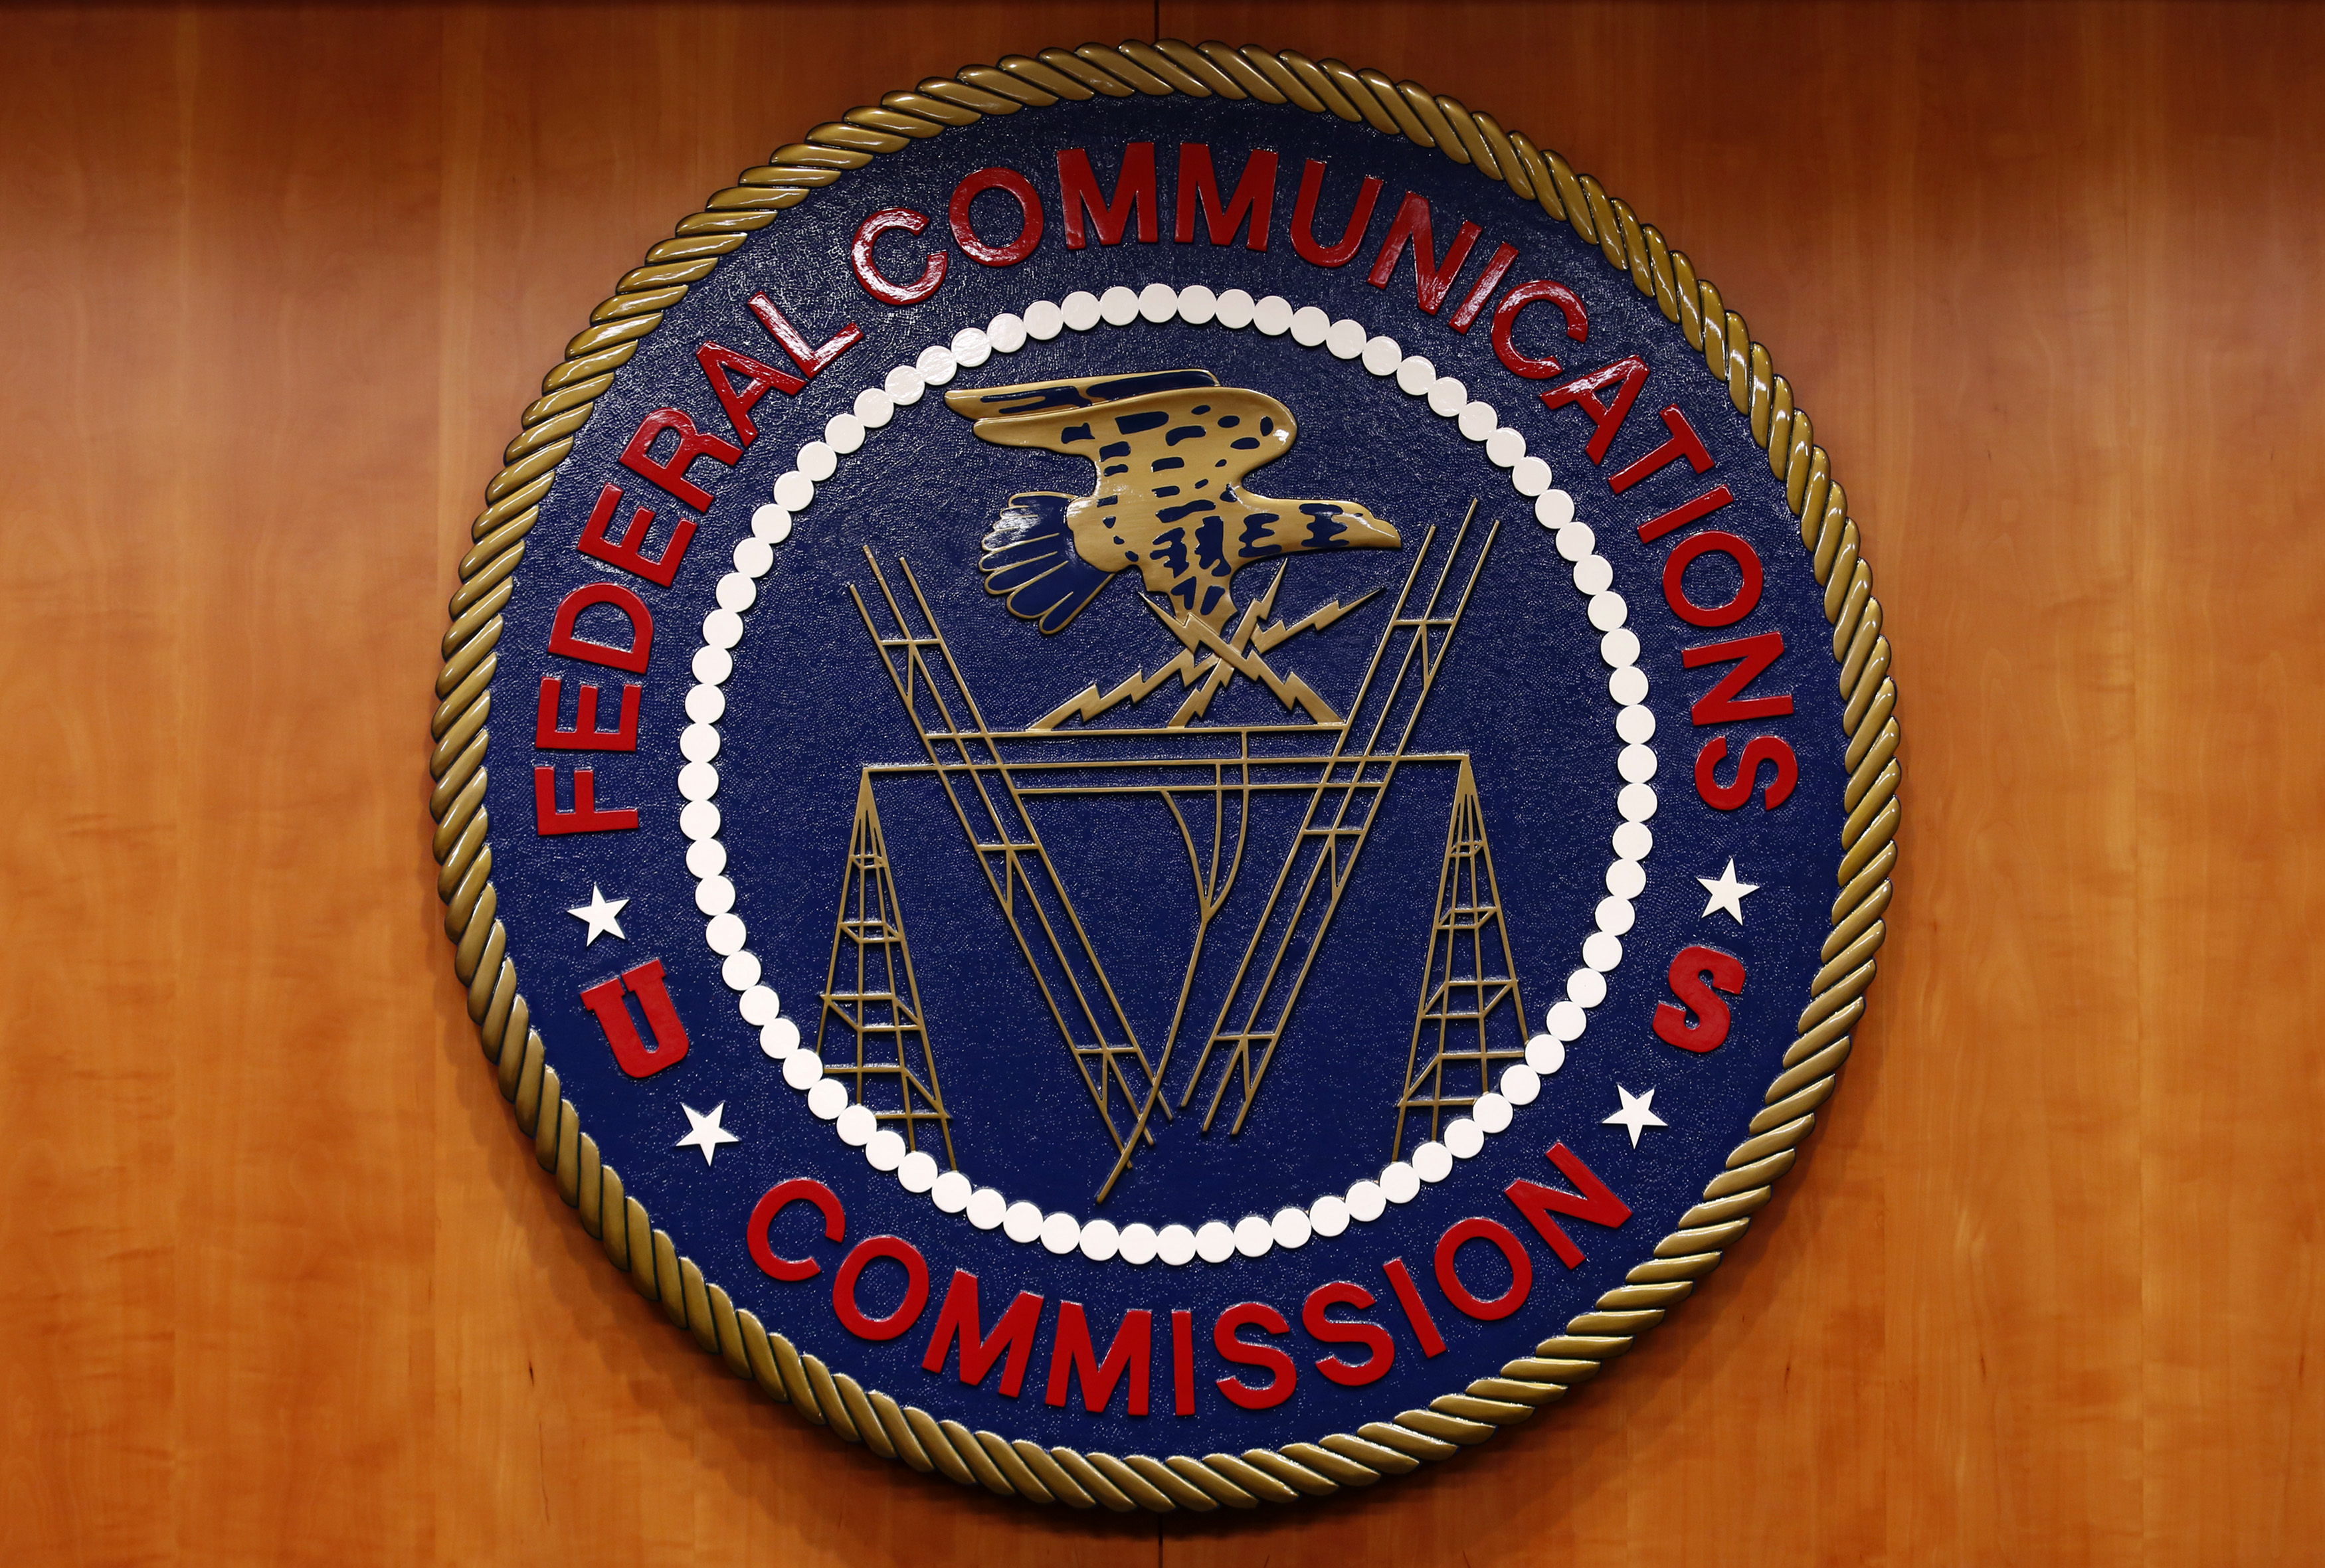 A federal appeals court was hearing arguments on Friday over whether the Trump administration acted legally when it repealed landmark net neutrality rules governing internet providers in December 2017.